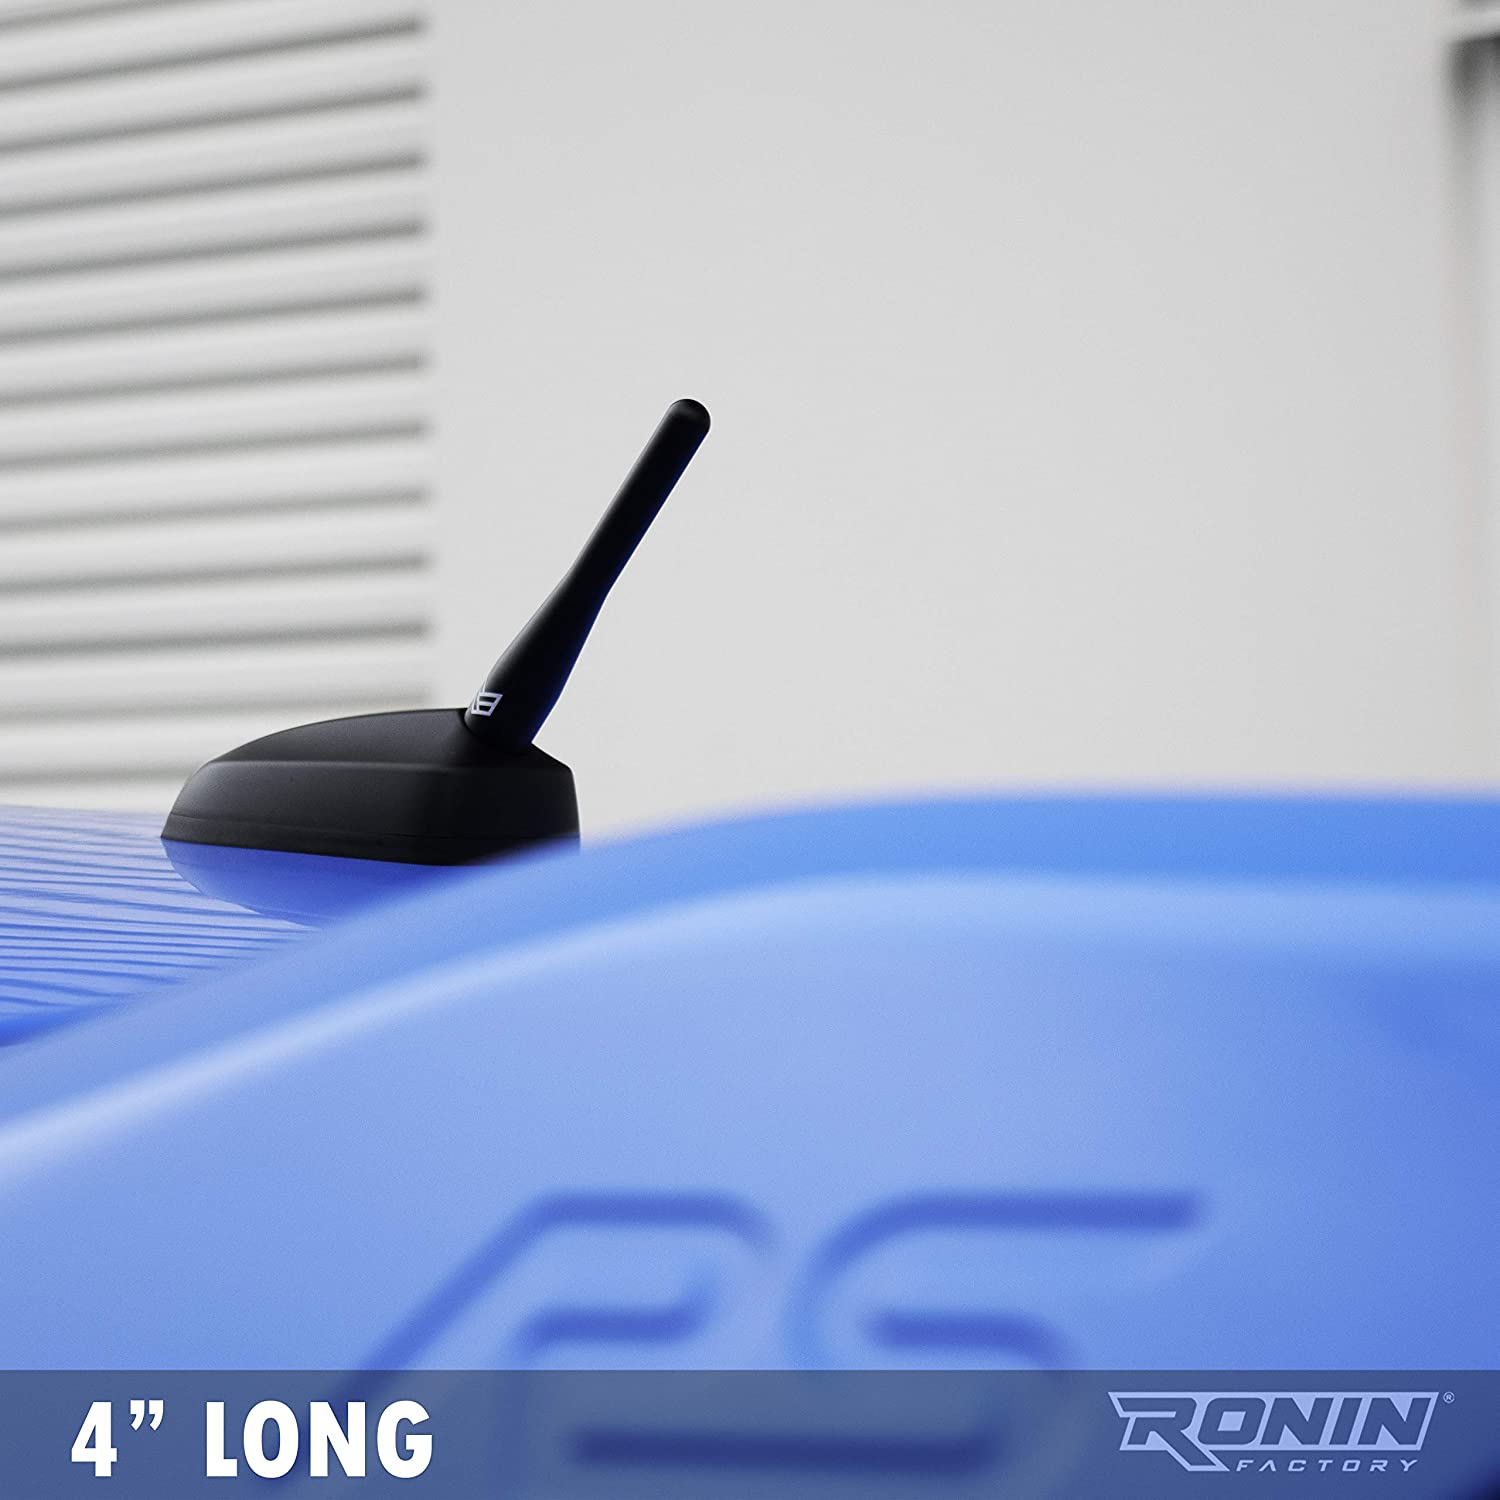 4 Inch Ronin Factory Stubby Antenna for Ford Focus RS /& ST 2008 with Anti-Theft Design